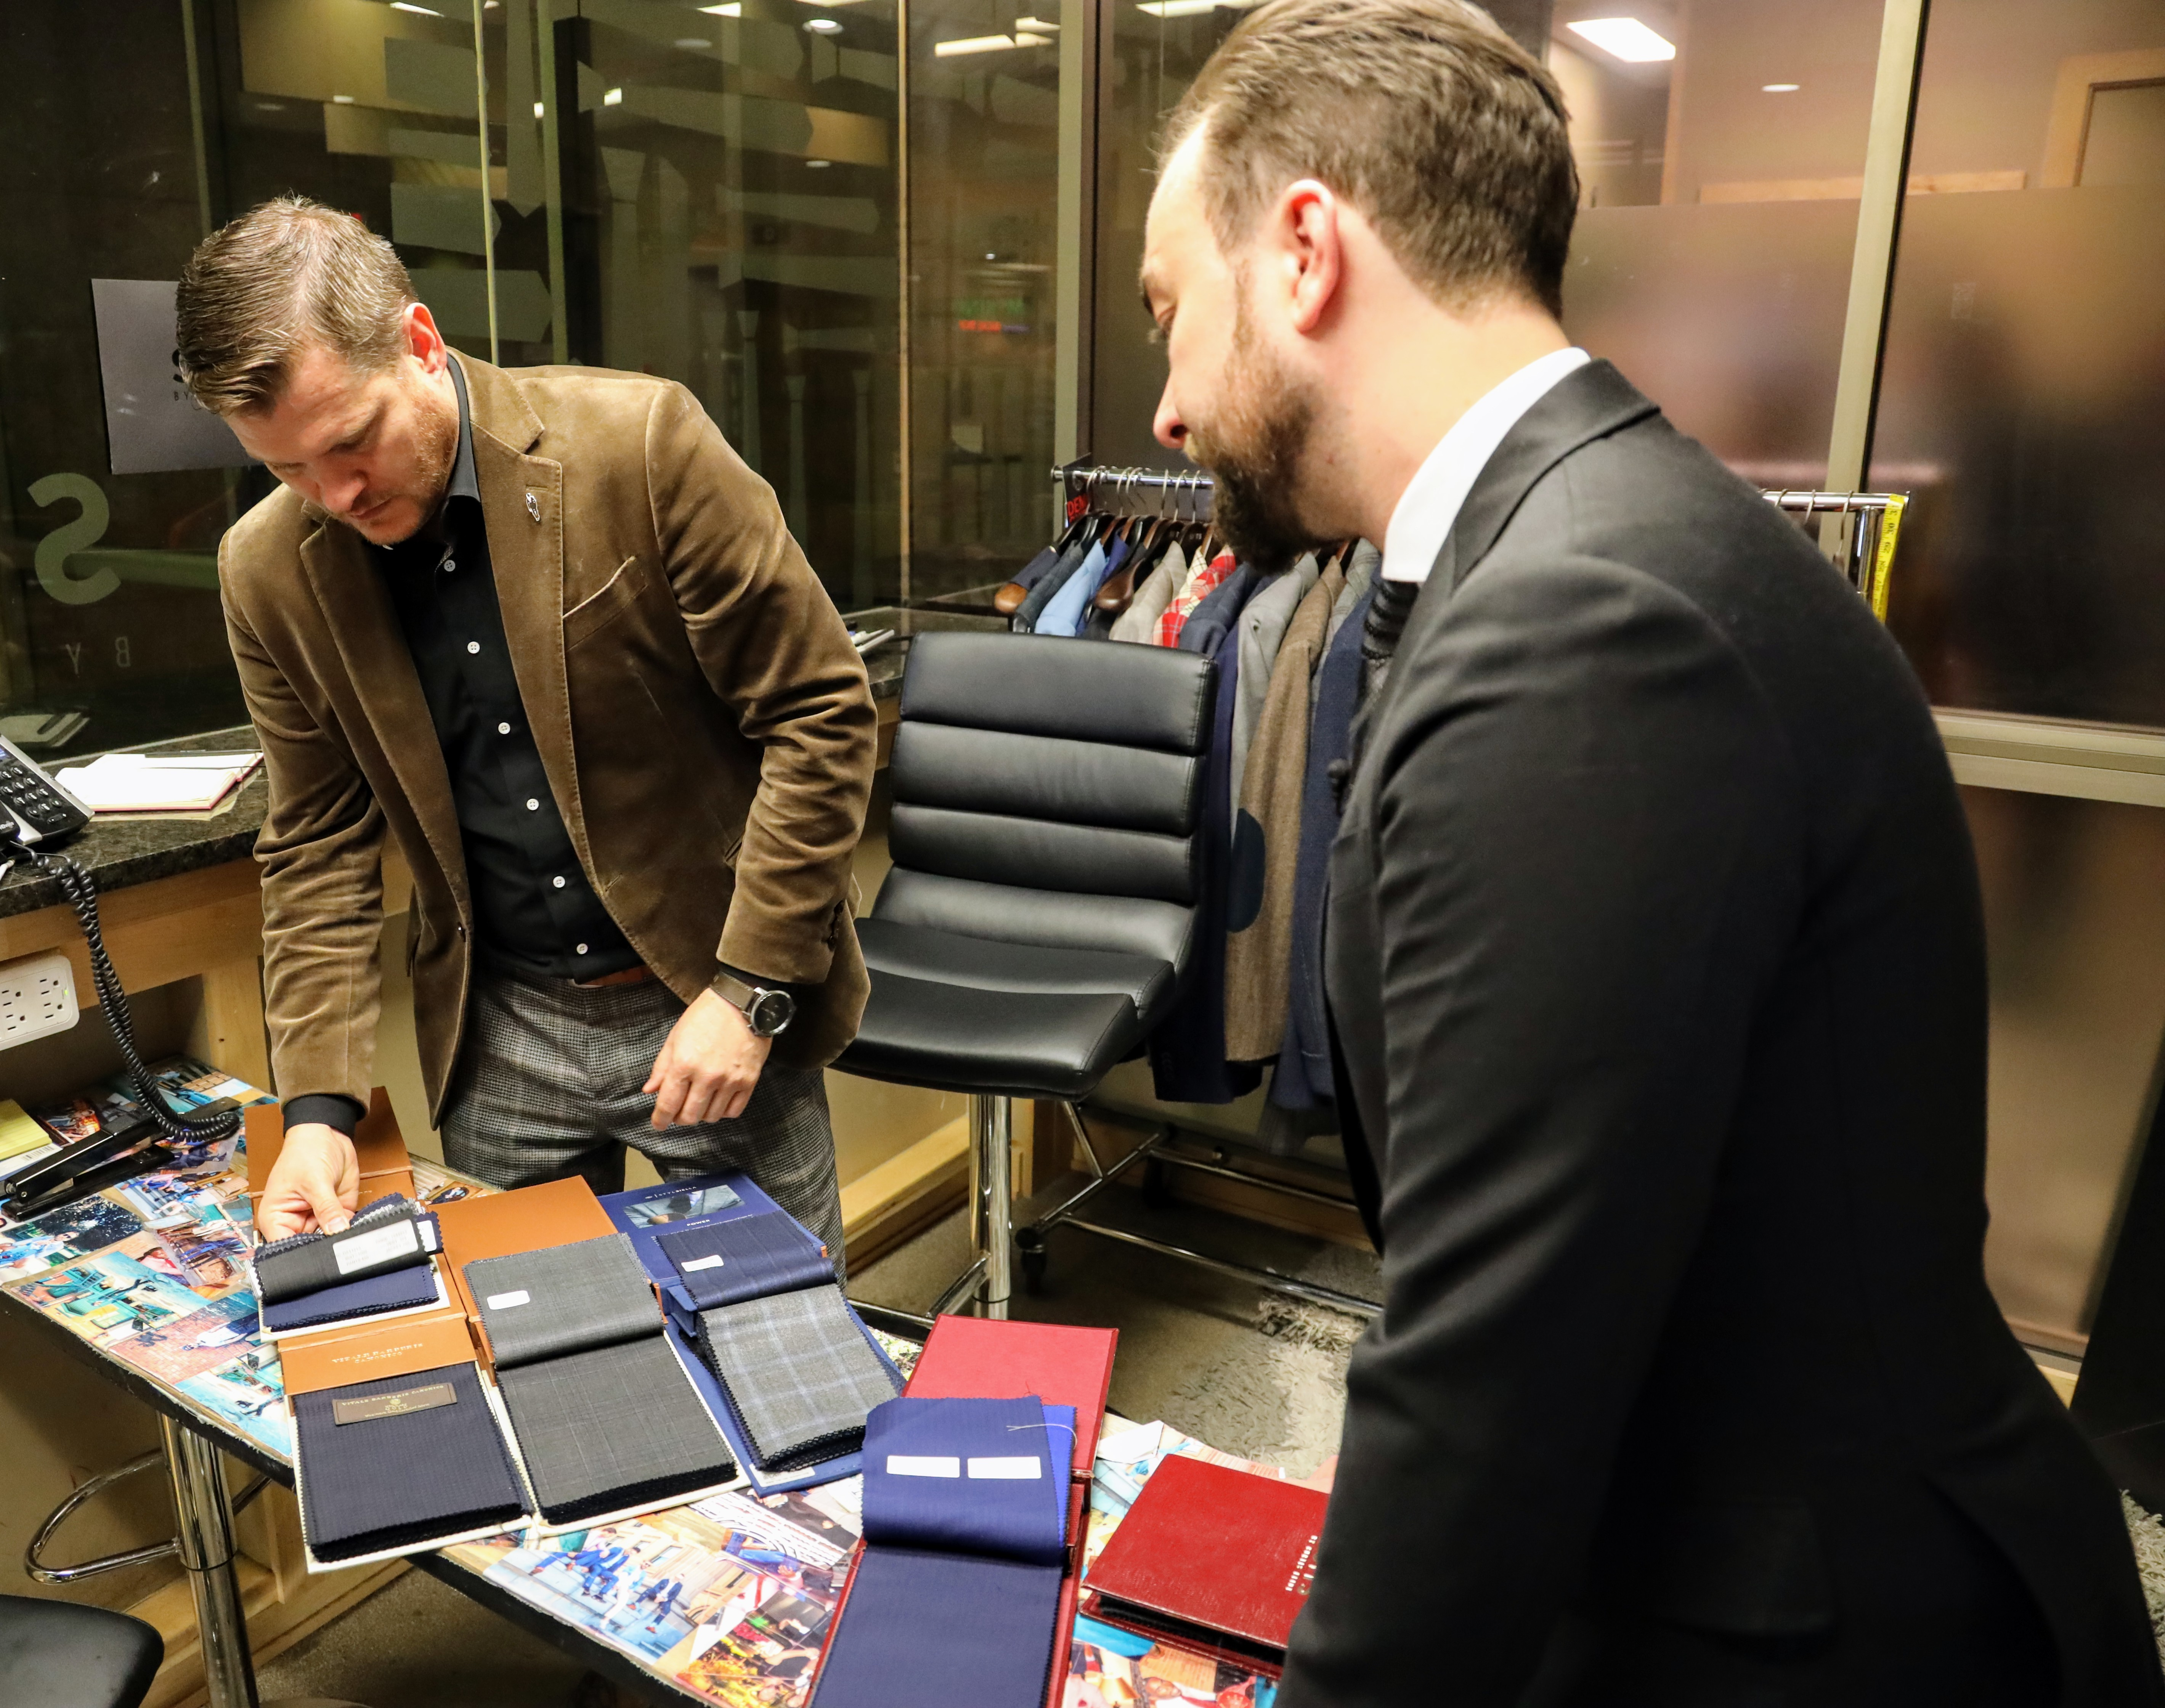 Farmer and salesman Jared Berry go through the many options for their bespoke suits.